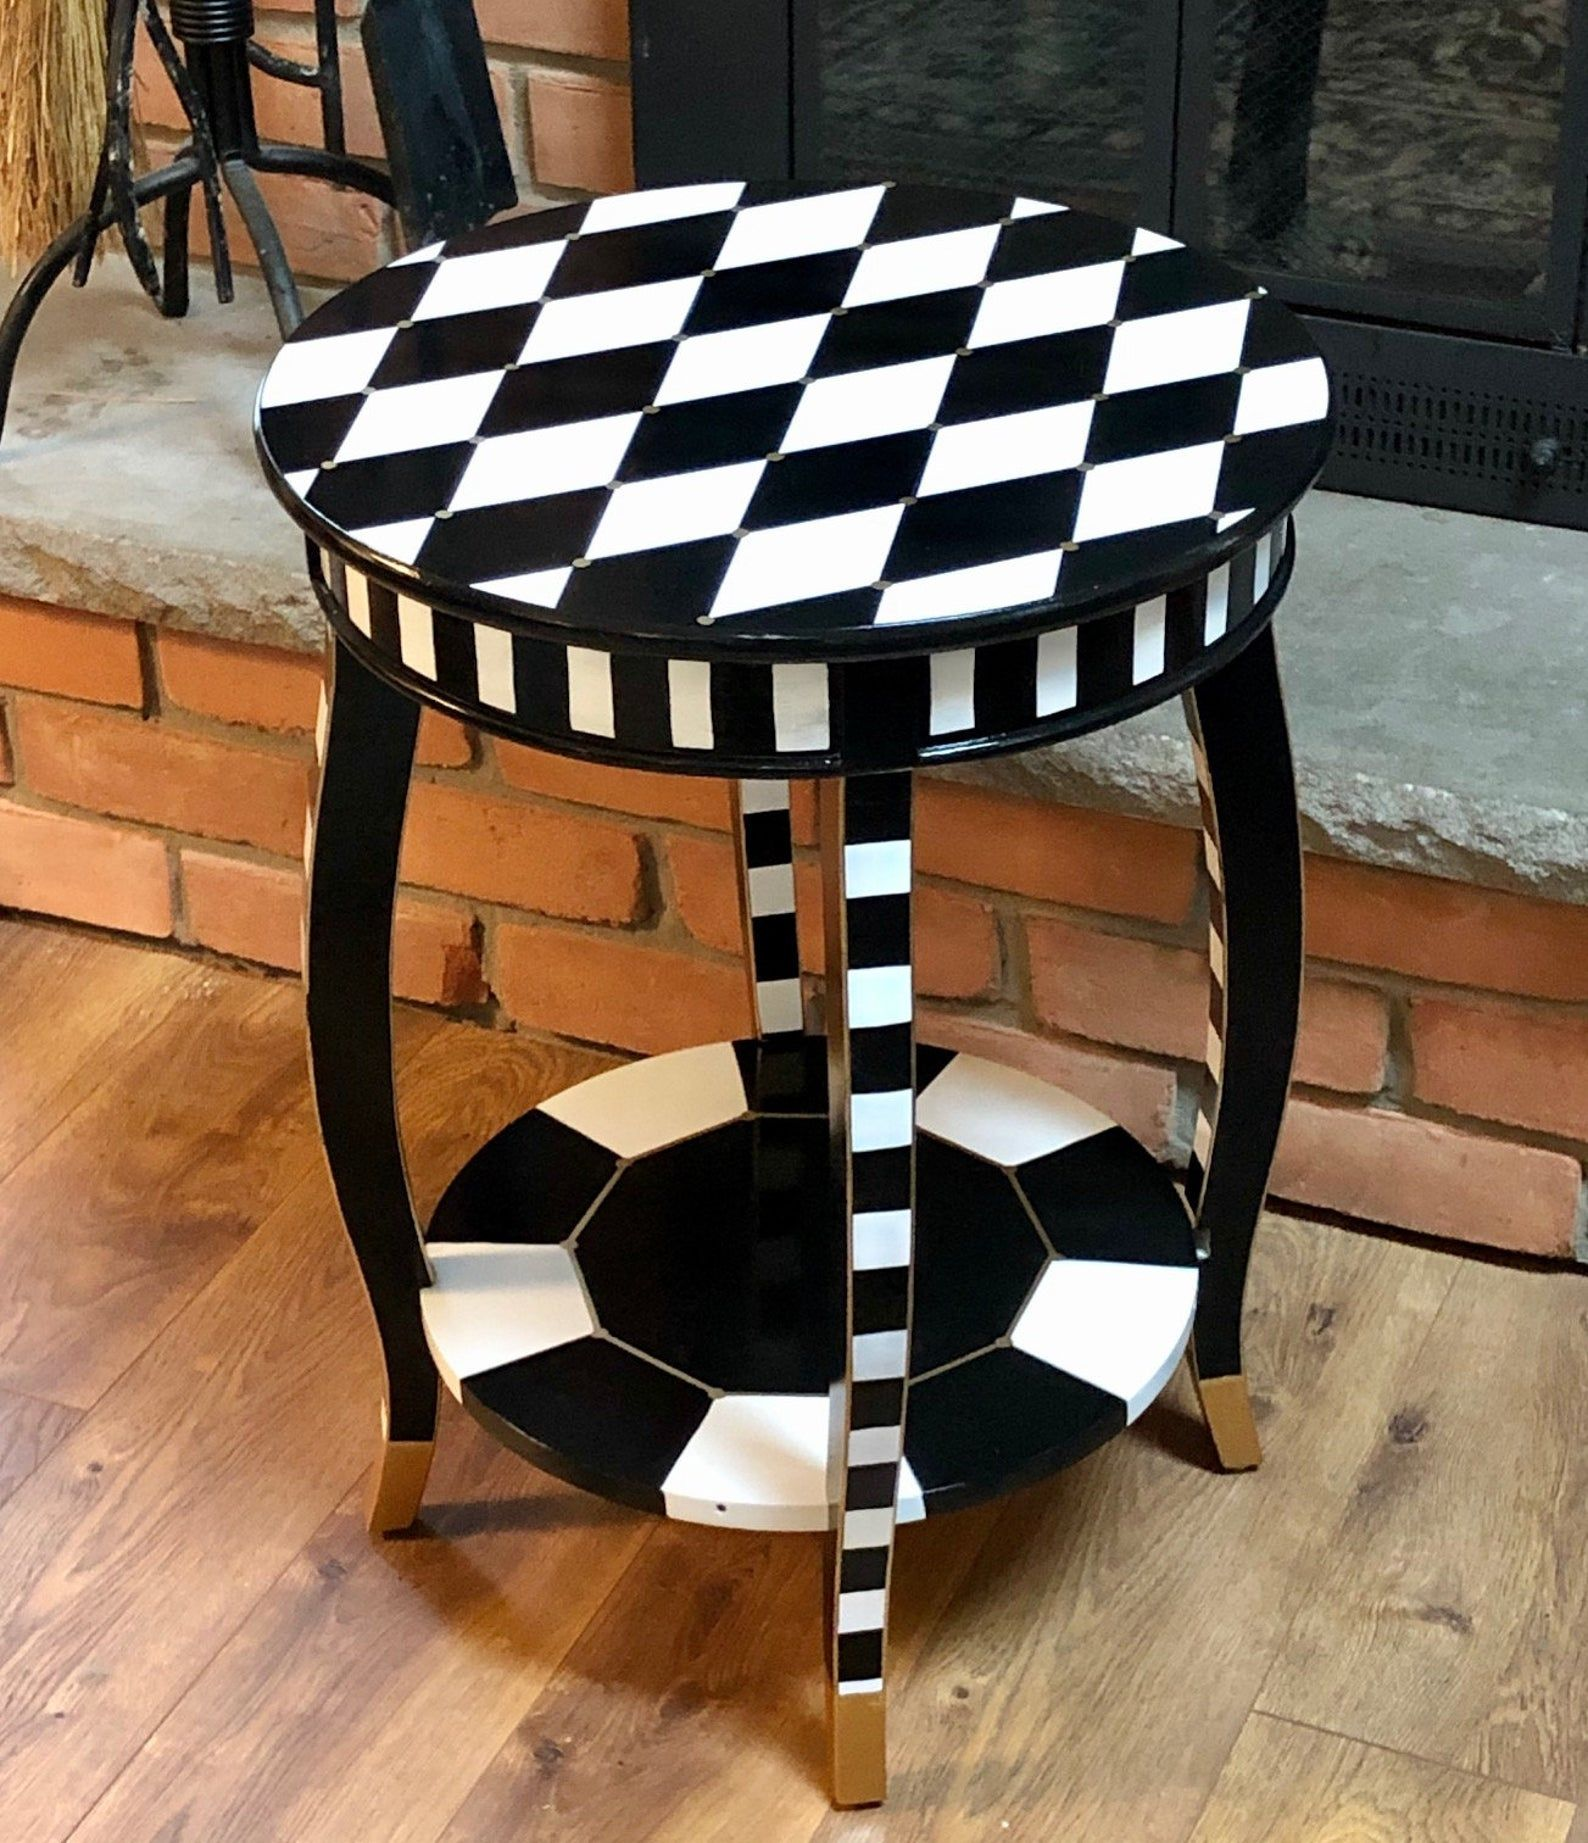 Whimsical Painted Table Black And White Harlequin Painted End Etsy Painted End Tables Painted Table Tops Whimsical Painted Furniture